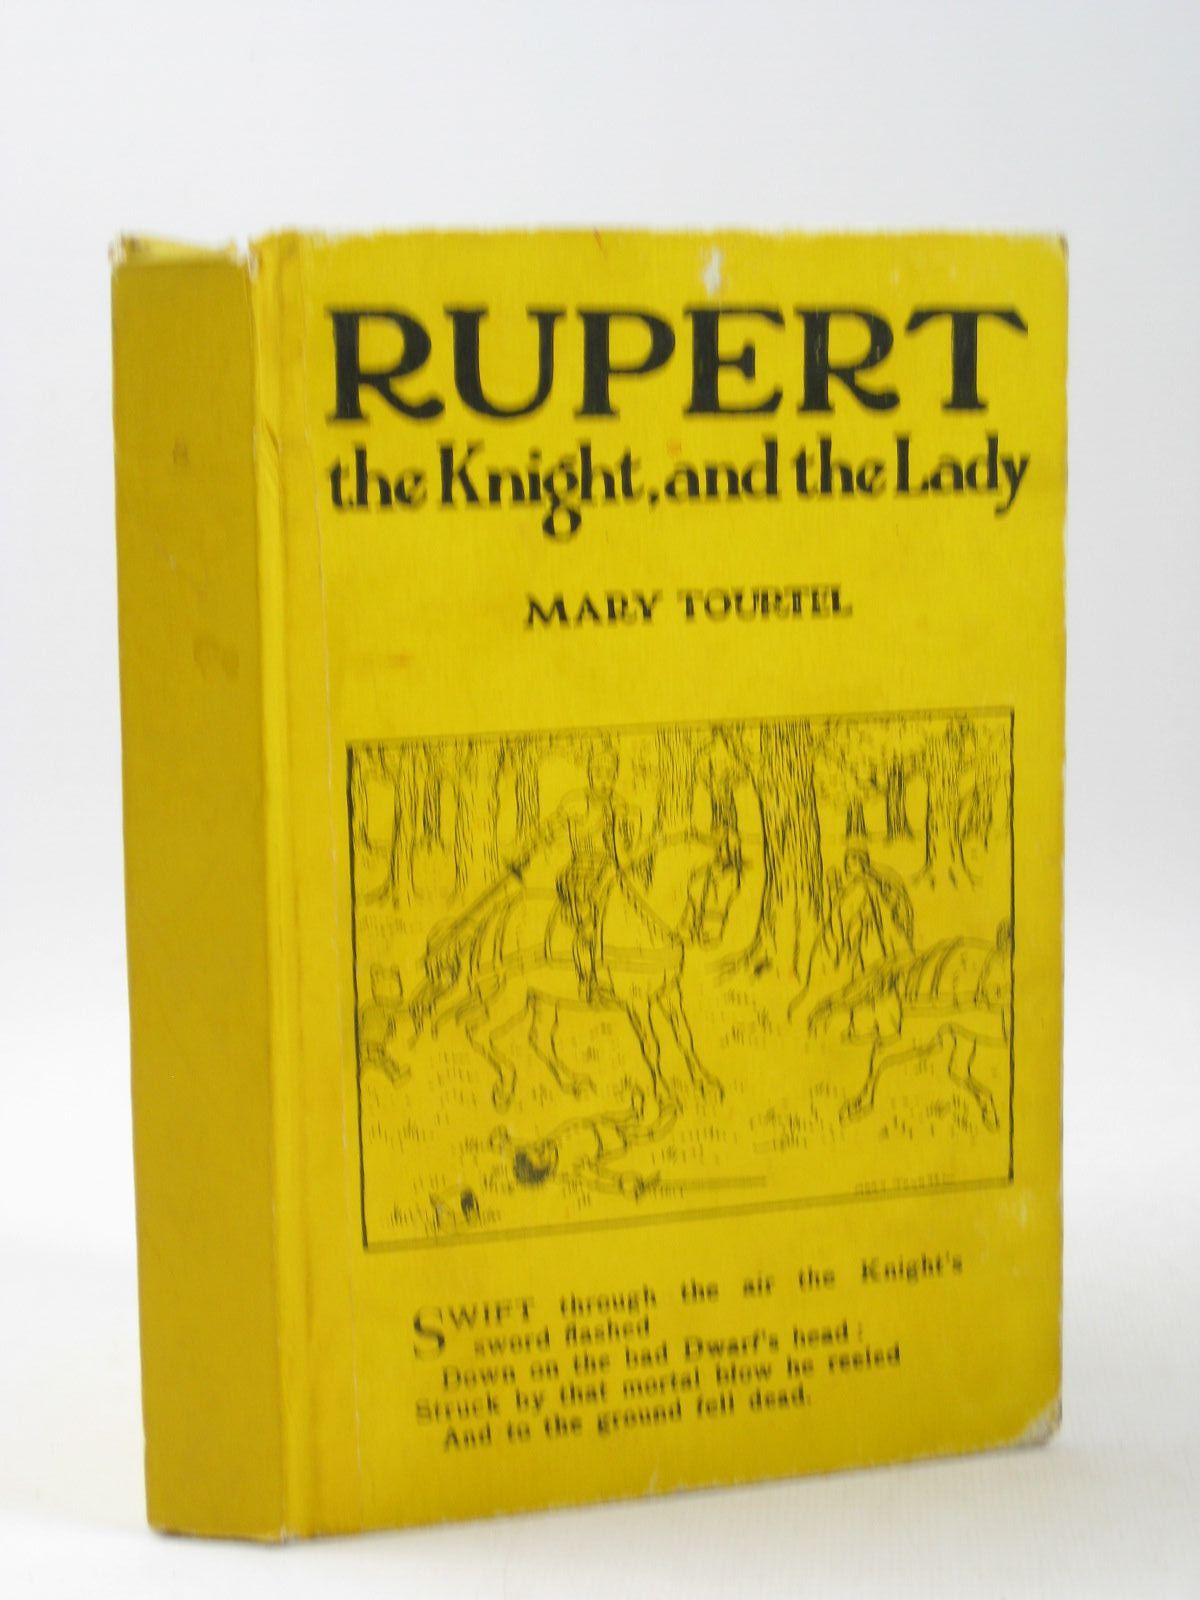 Photo of RUPERT THE KNIGHT AND THE LADY - RUPERT LITTLE BEAR LIBRARY No. 8 written by Tourtel, Mary illustrated by Tourtel, Mary published by Sampson Low, Marston & Co. Ltd. (STOCK CODE: 1503917)  for sale by Stella & Rose's Books